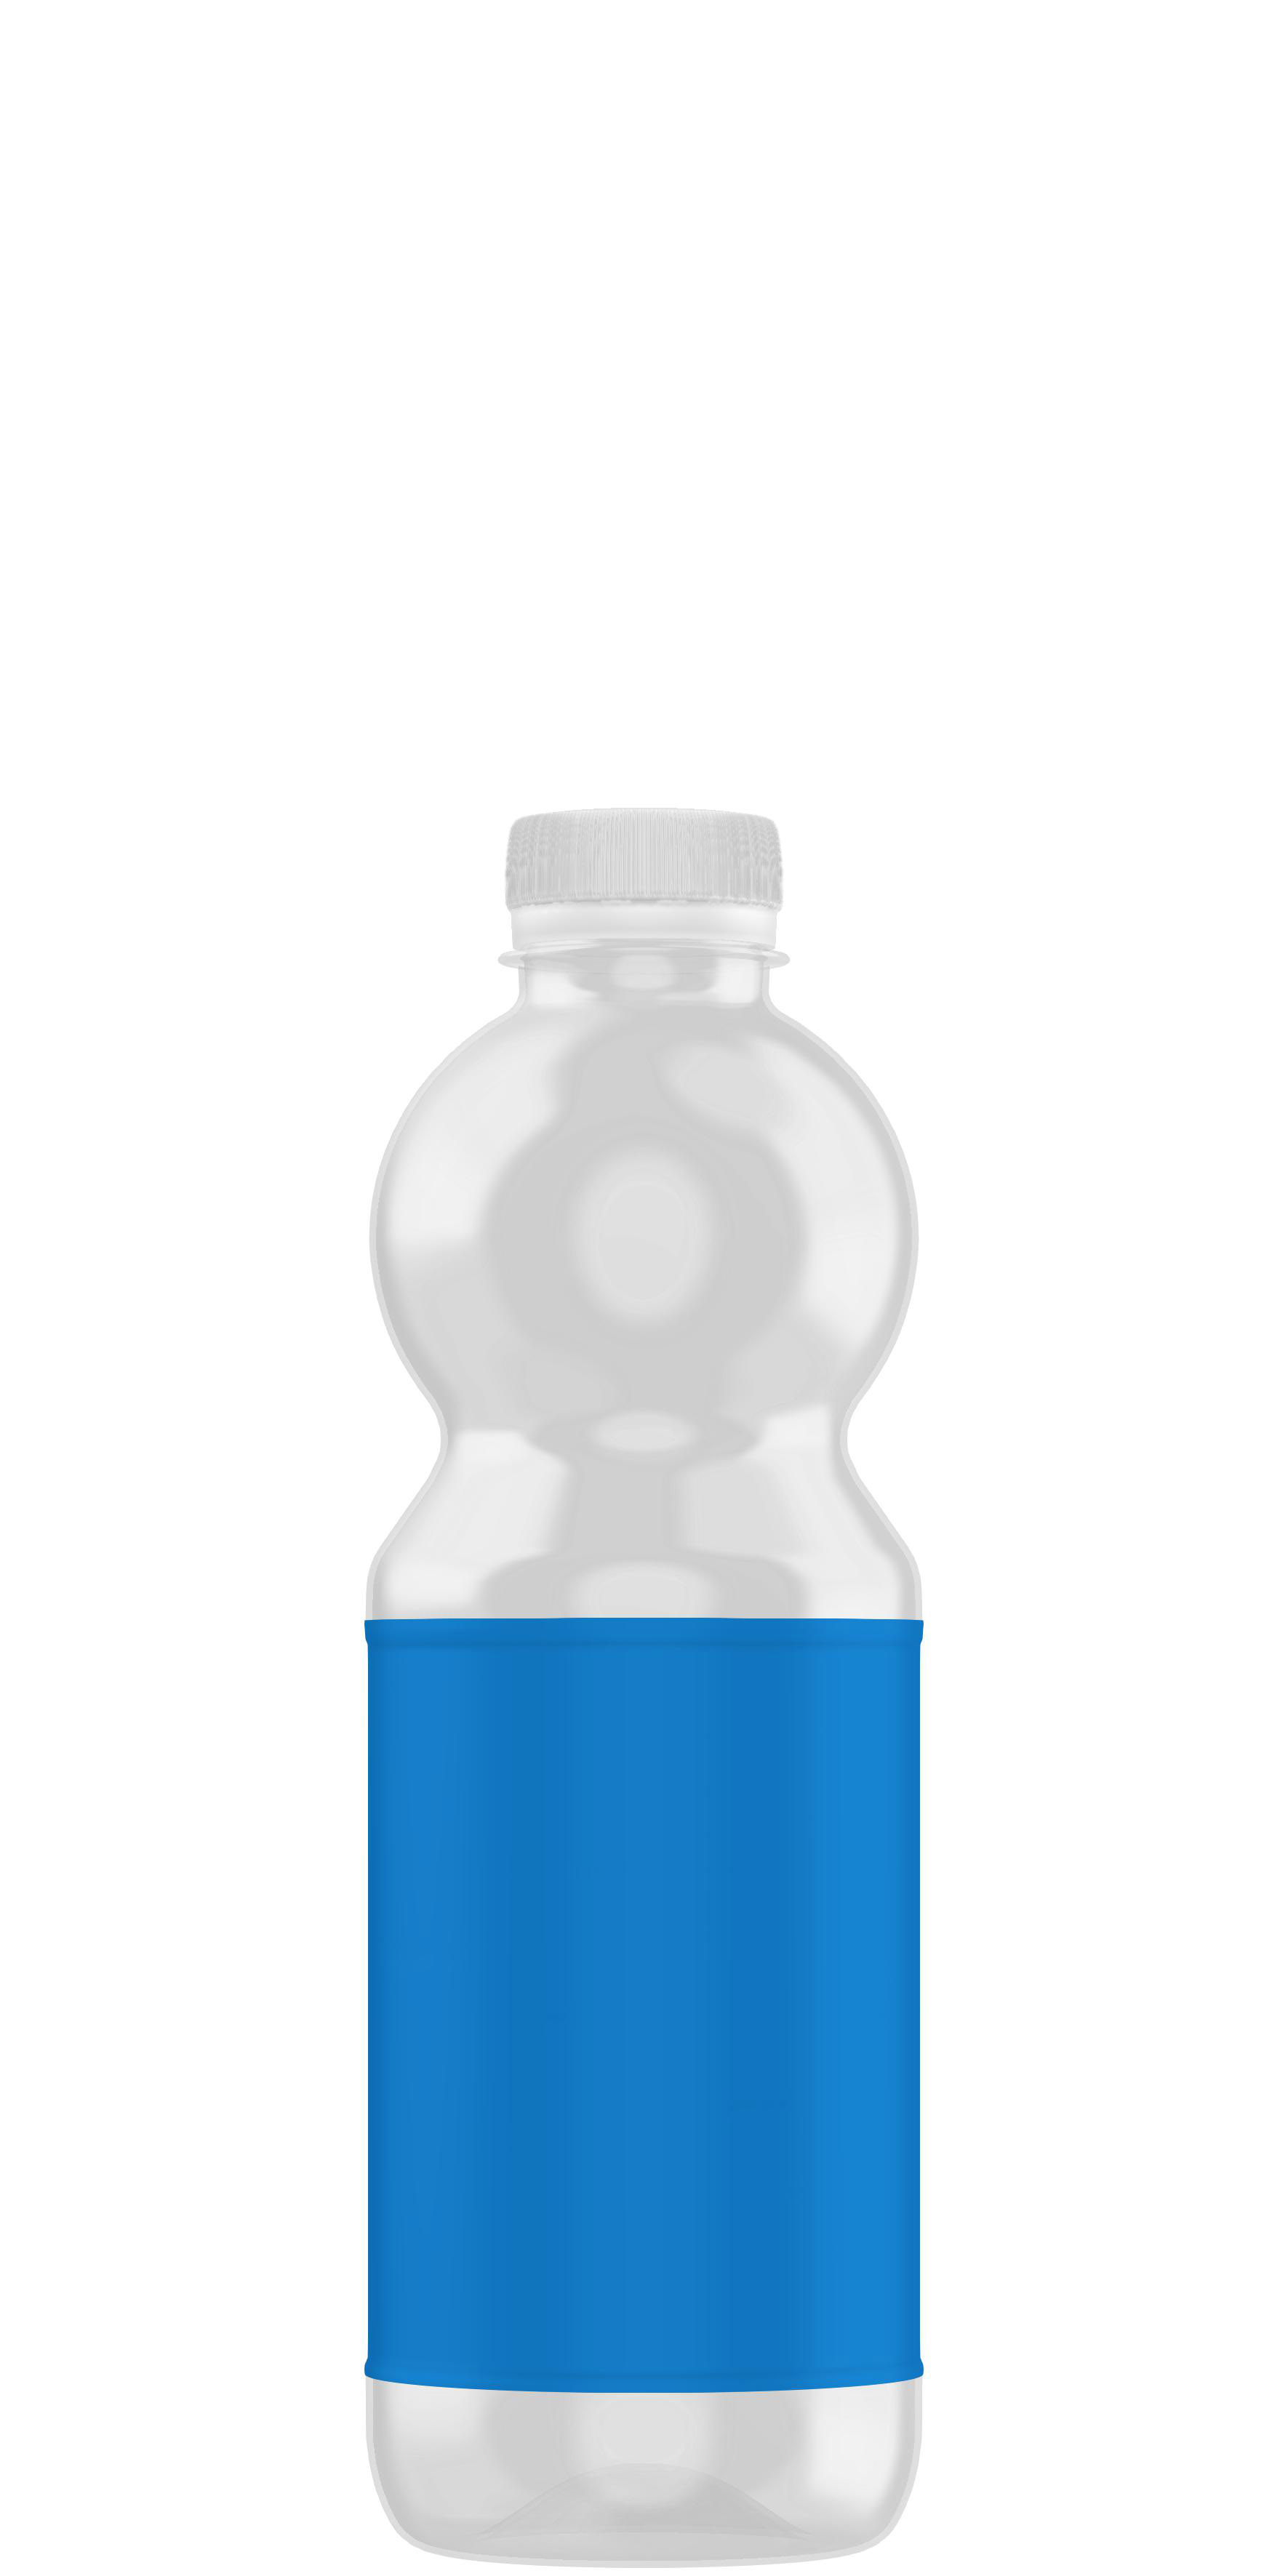 Packaging shape of fruit nectar 1L to 2L